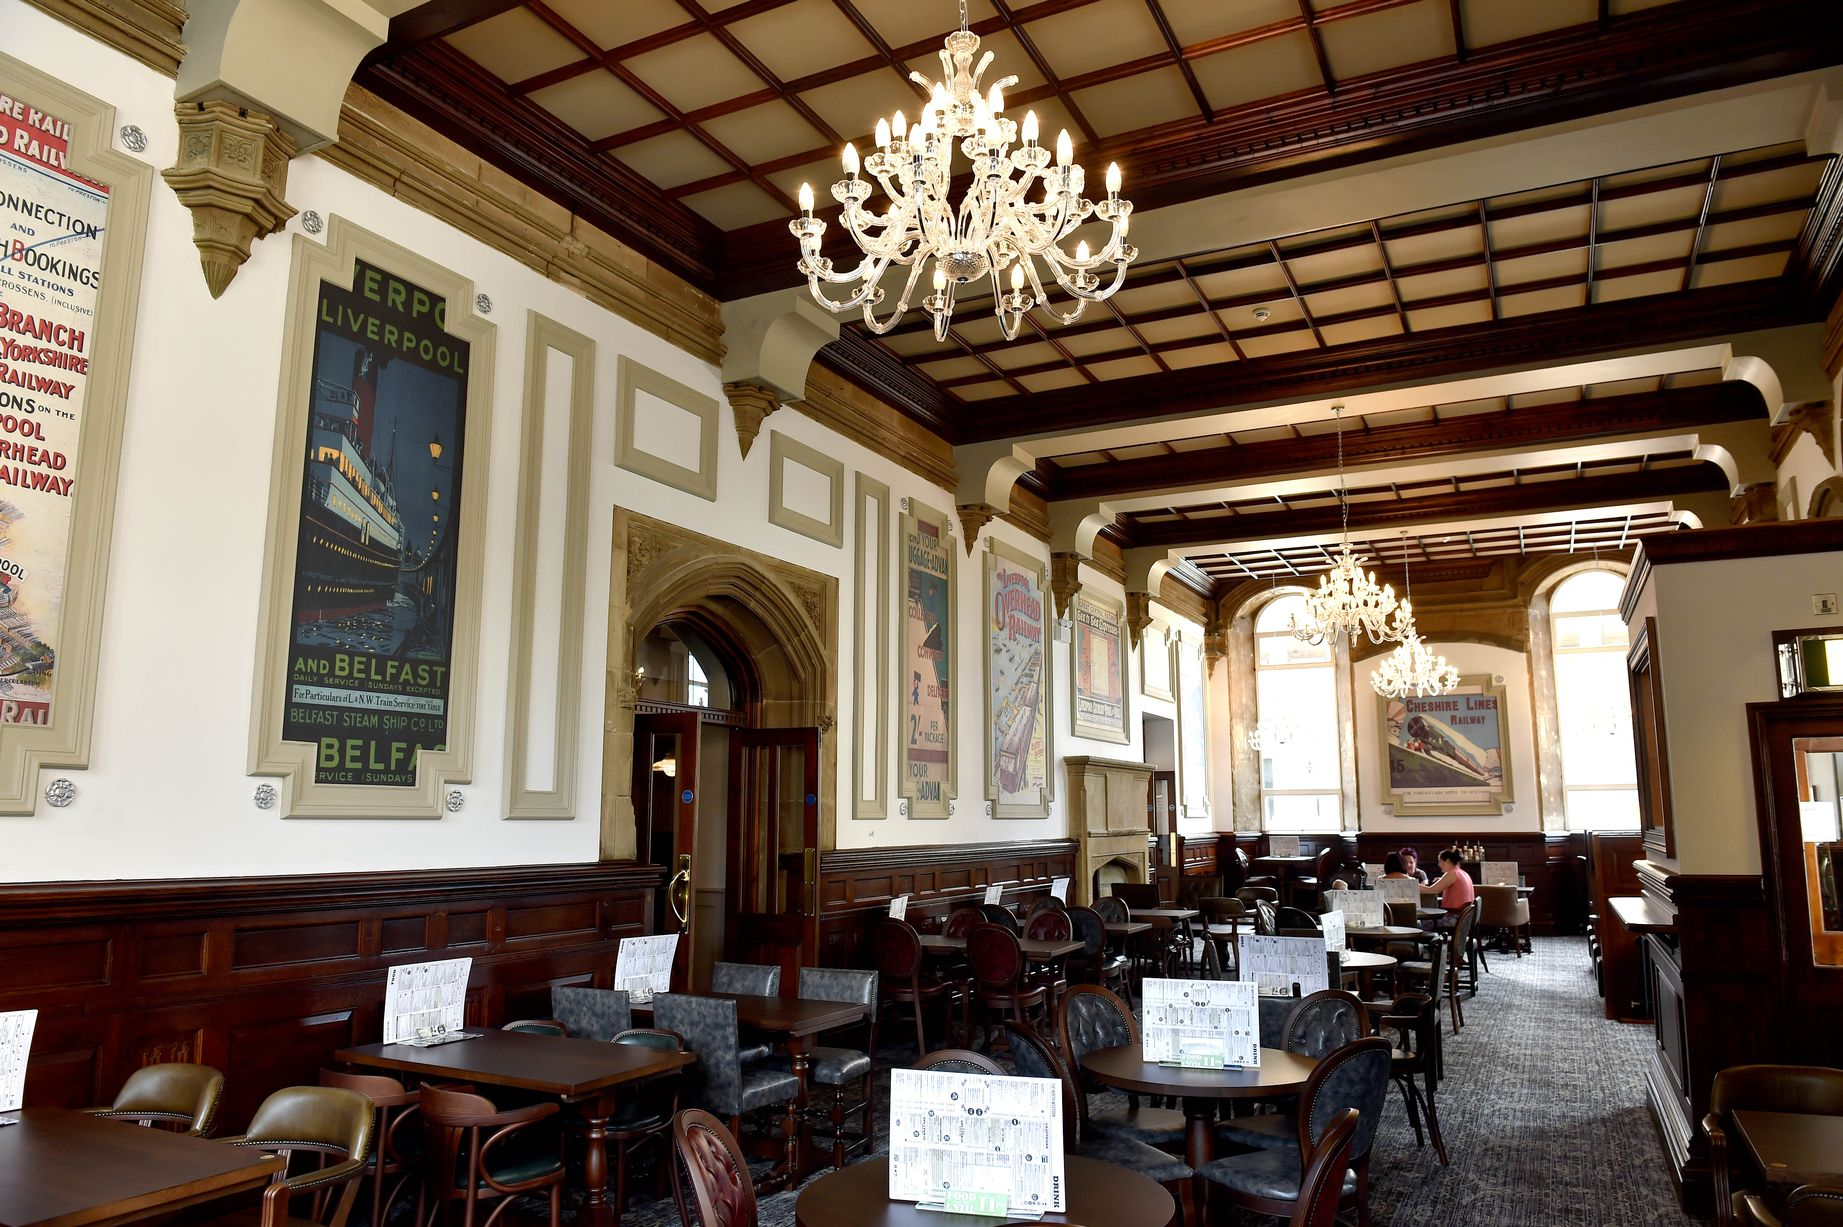 Liverpool's North Western Hall, by J D Wetherspoon